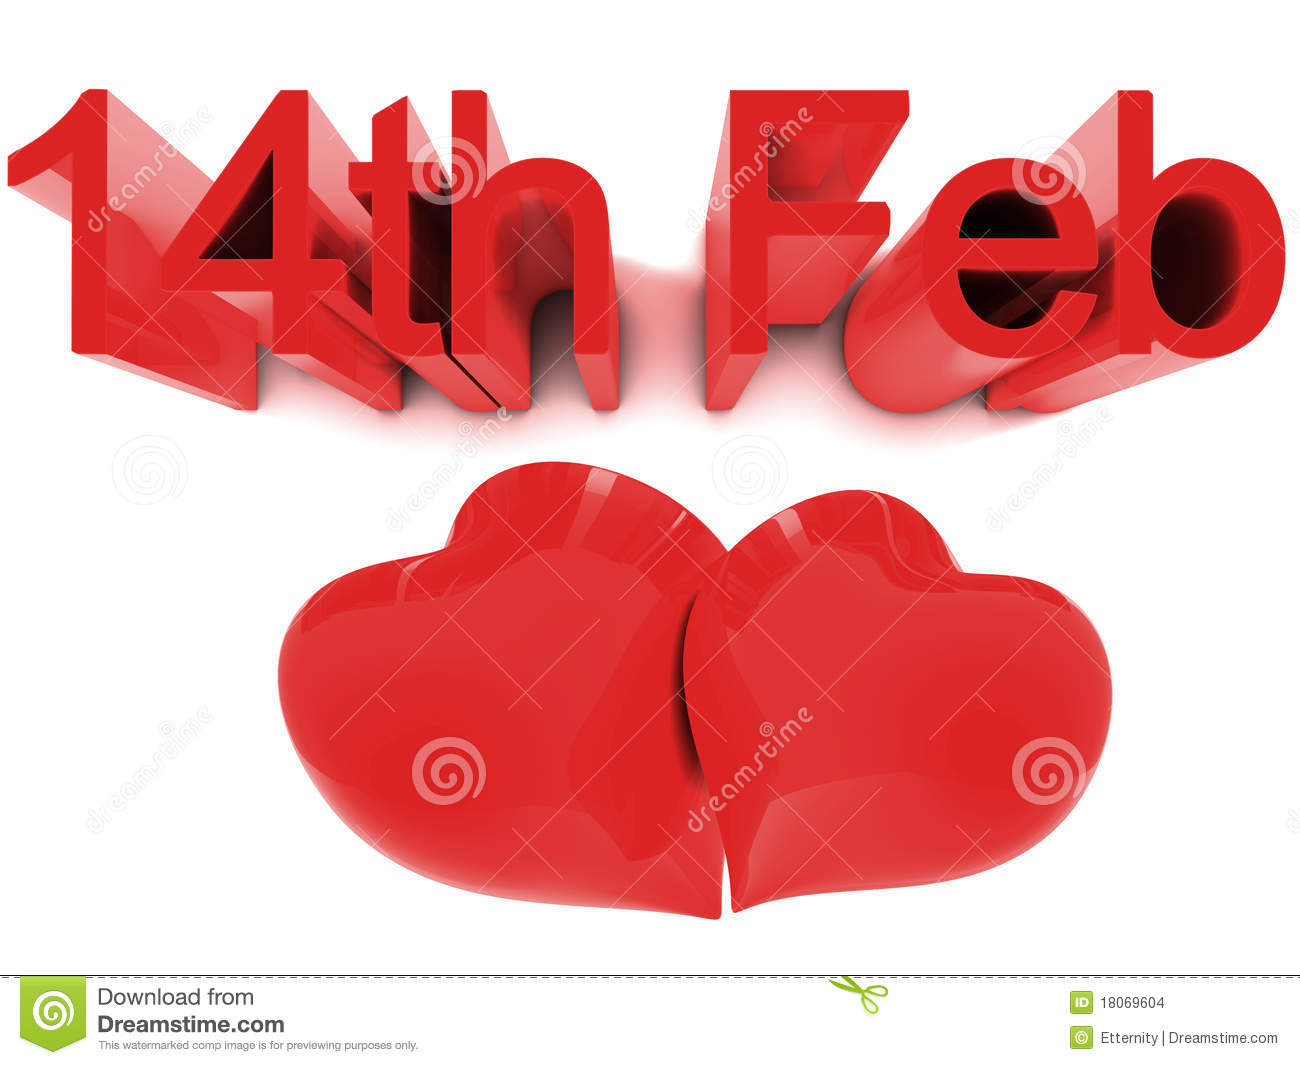 14th February St. Valentines Day Stock Illustration - Image: 18069604